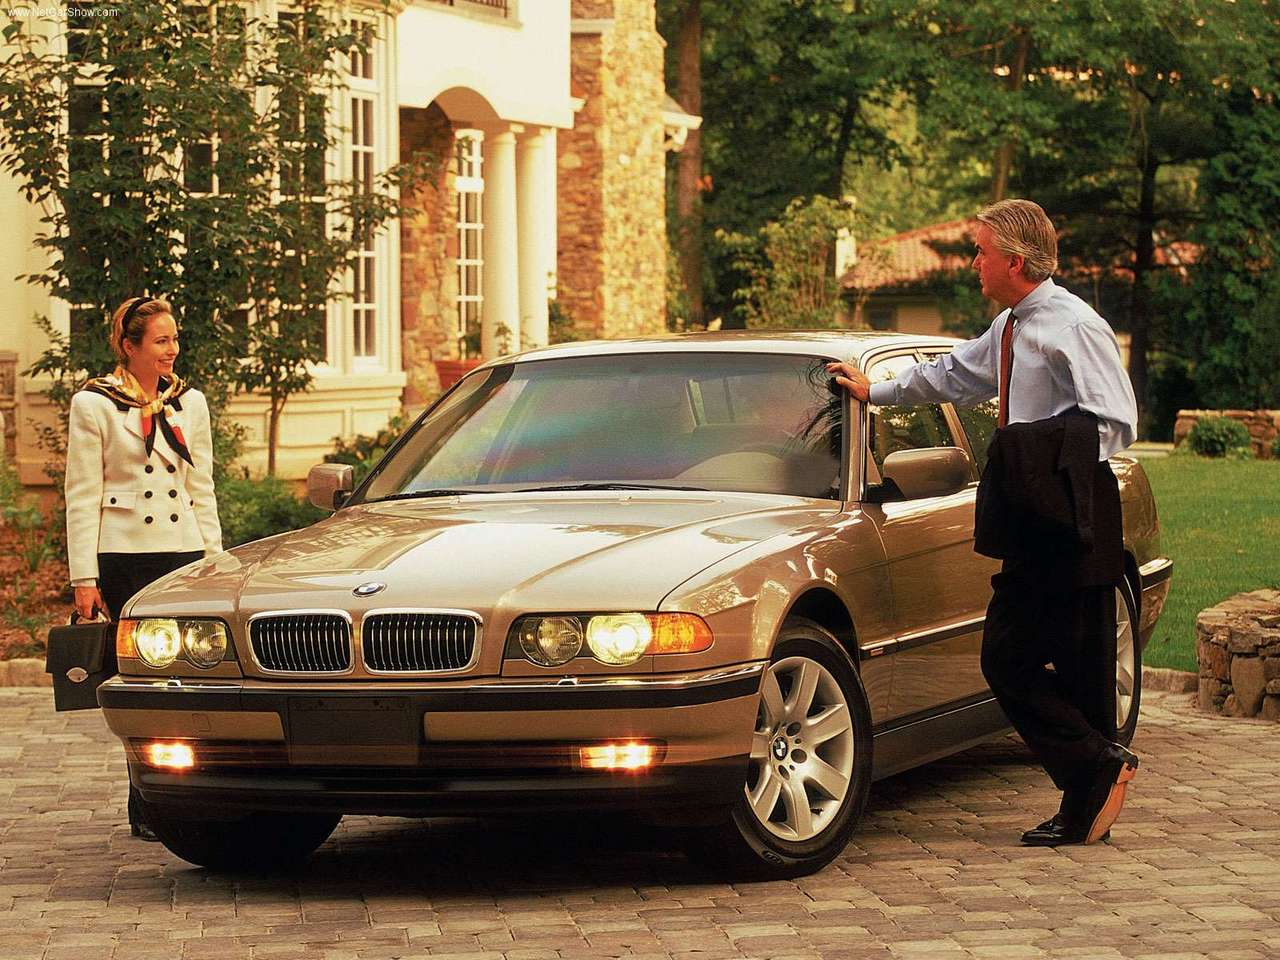 BMW 7 series 725tds 2000 photo - 3